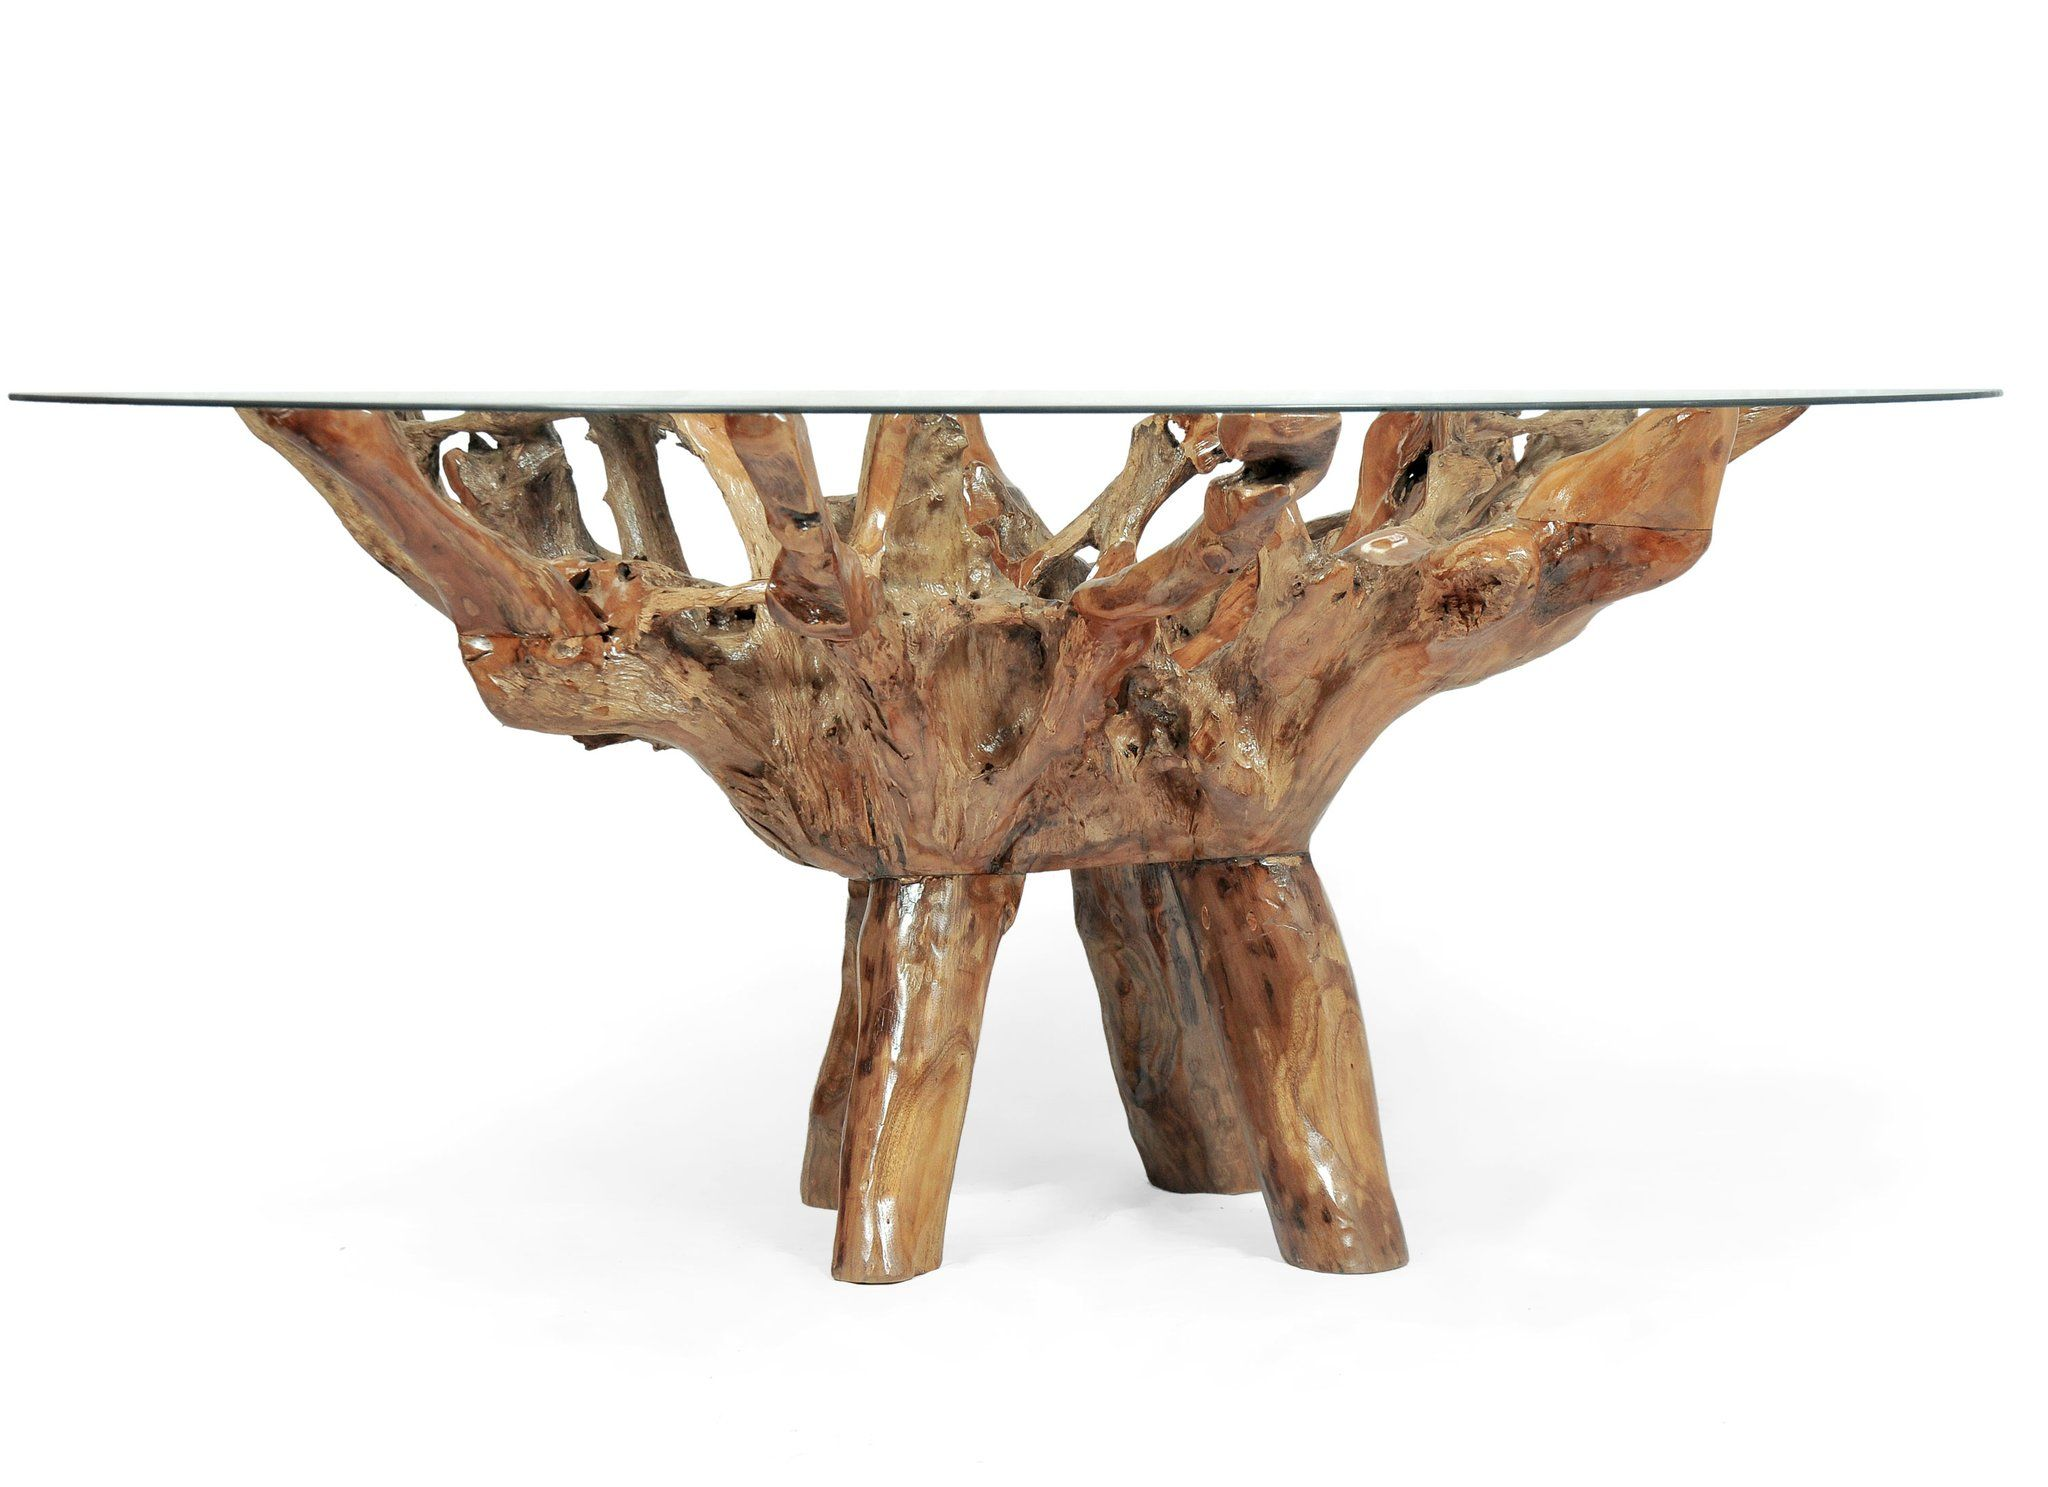 Teak Wood Root Dining Table Including A 63 Inch Round Glass Top In